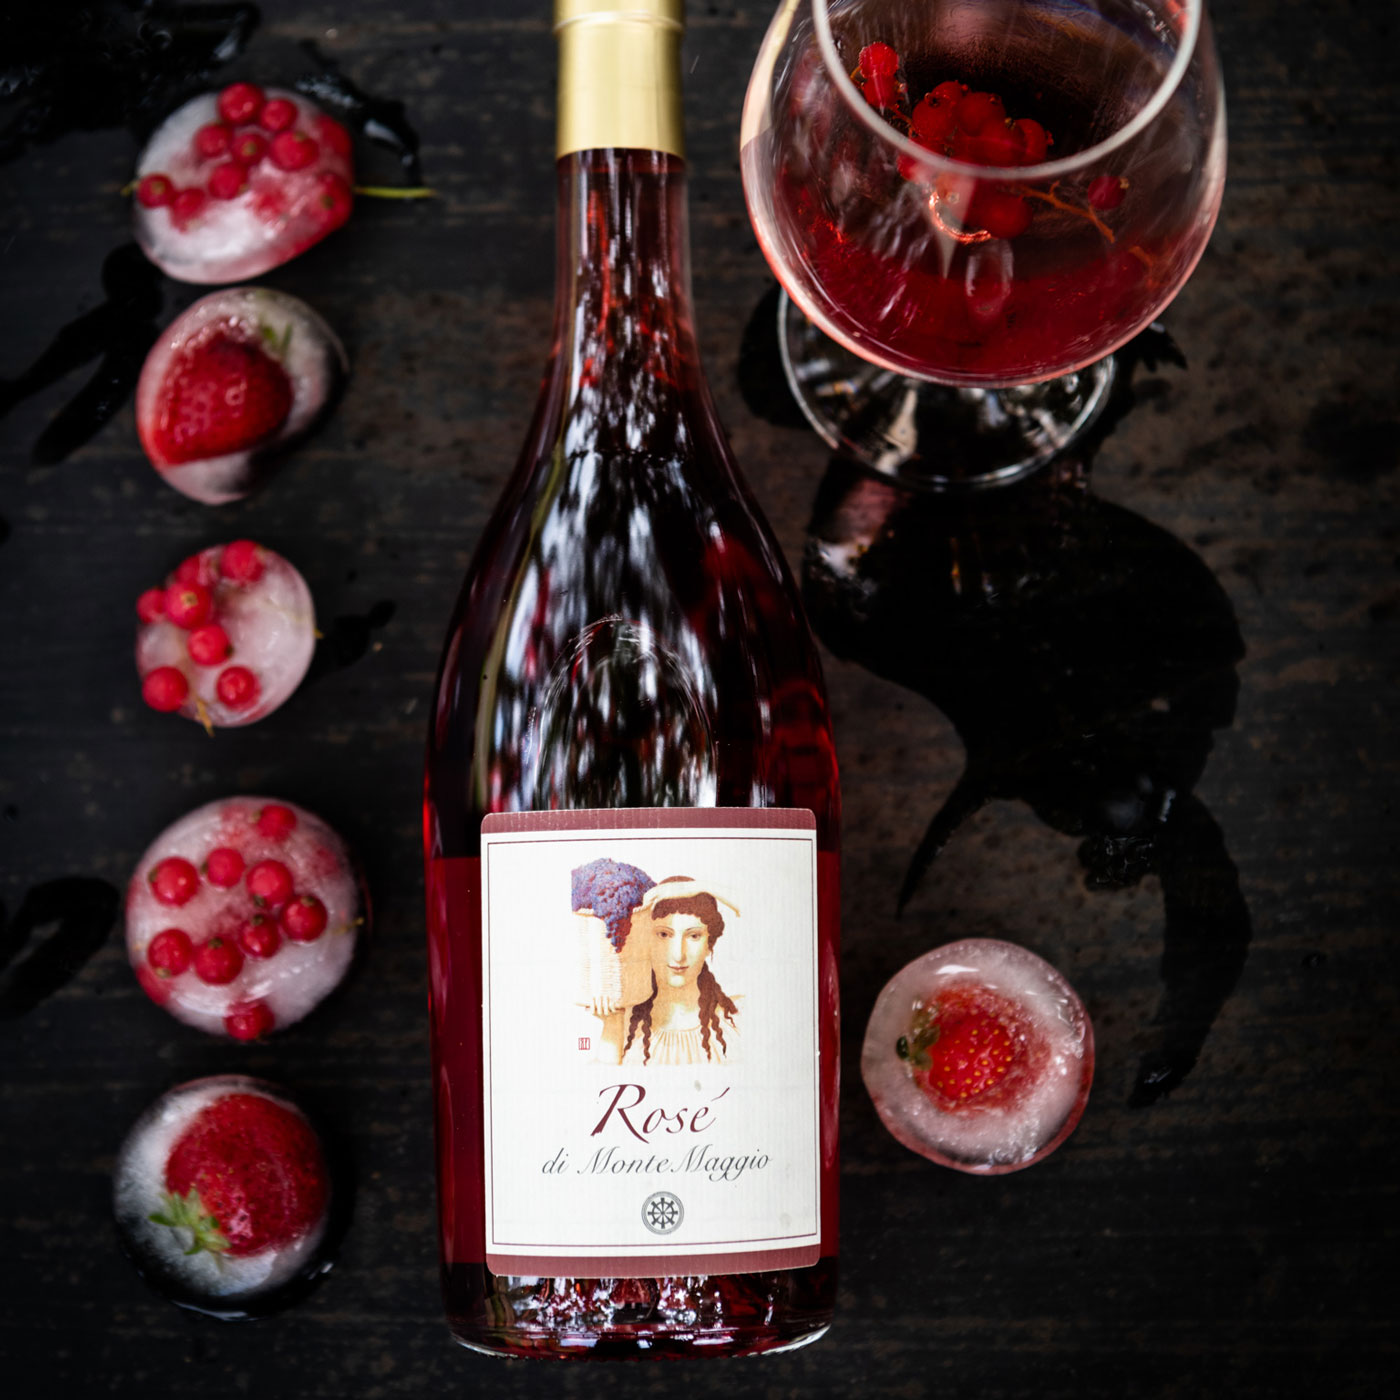 Fresh and light, Rosé di Montemaggio is great as an aperitif